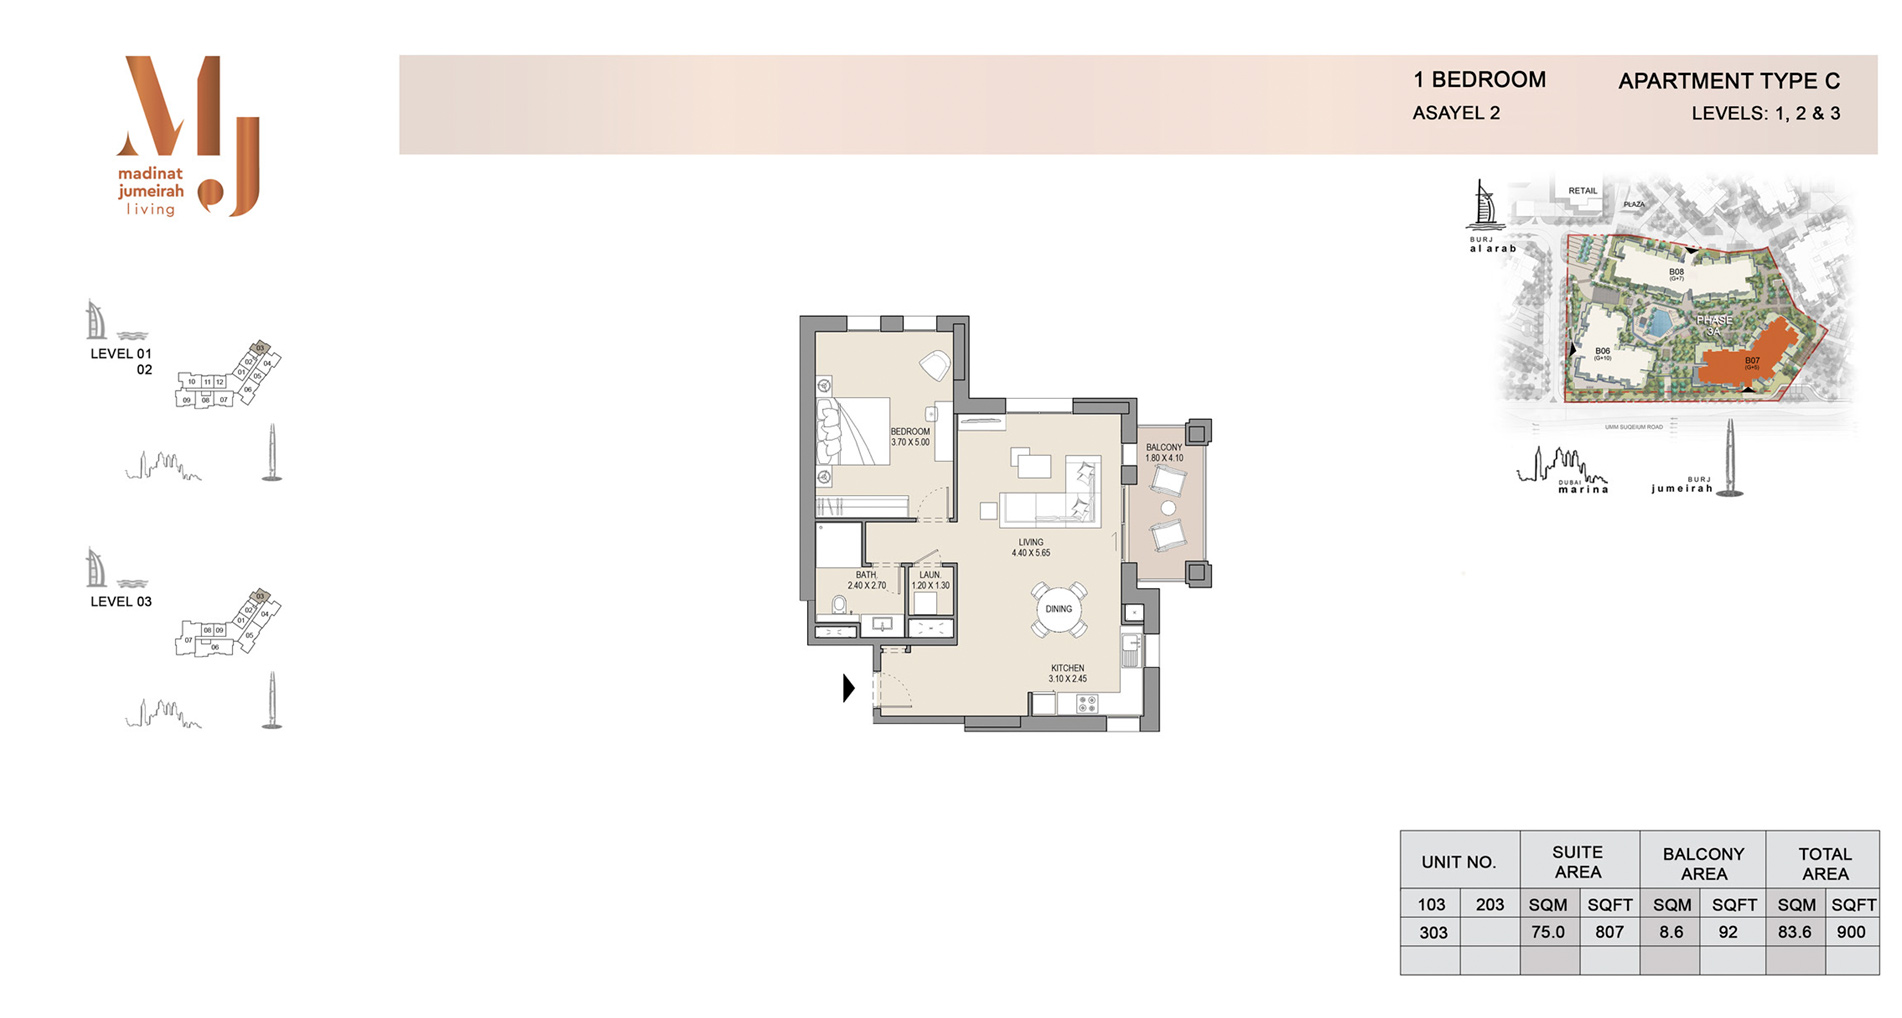 Building 2, 1 Bed Type C Level 1 to 3, size 900    sq. ft.